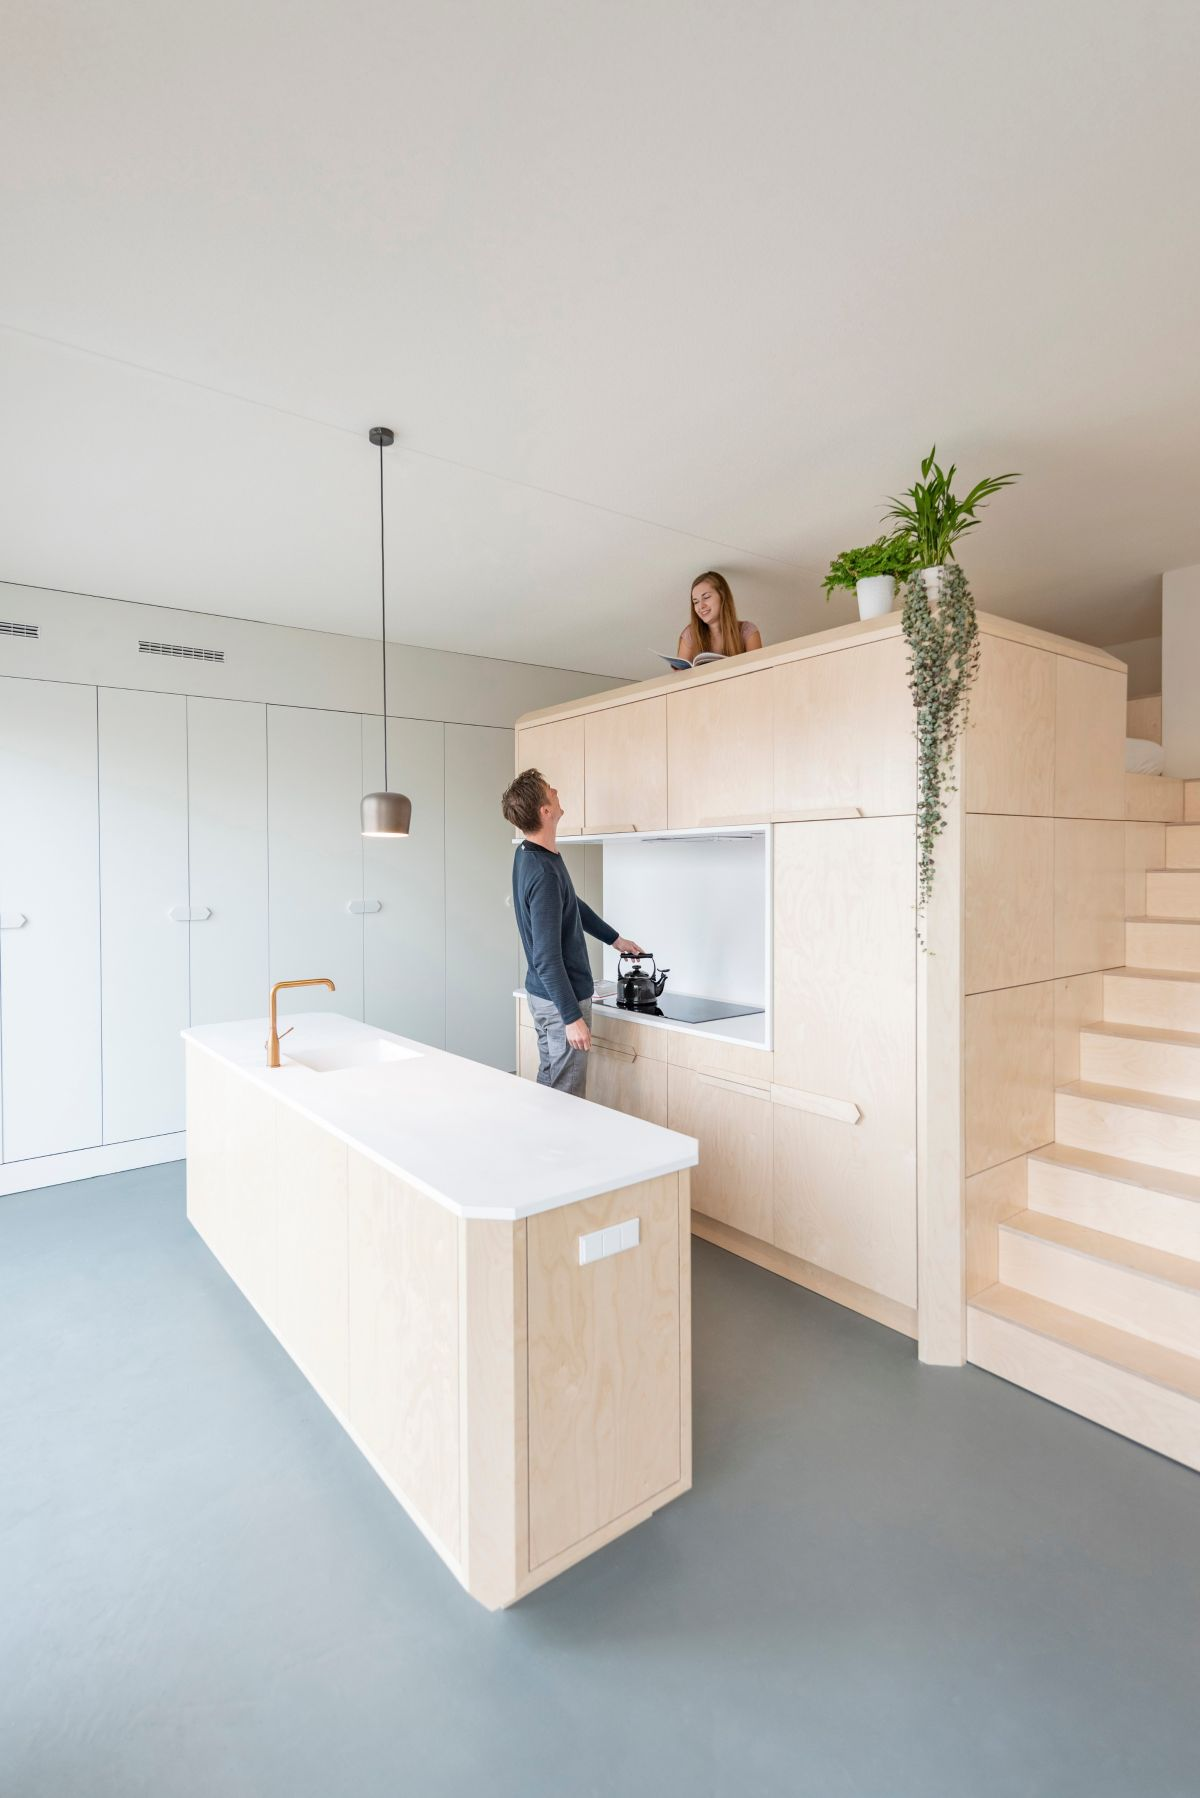 Even though the sleeping area is practically on top of the kitchen, it has a lot of privacy